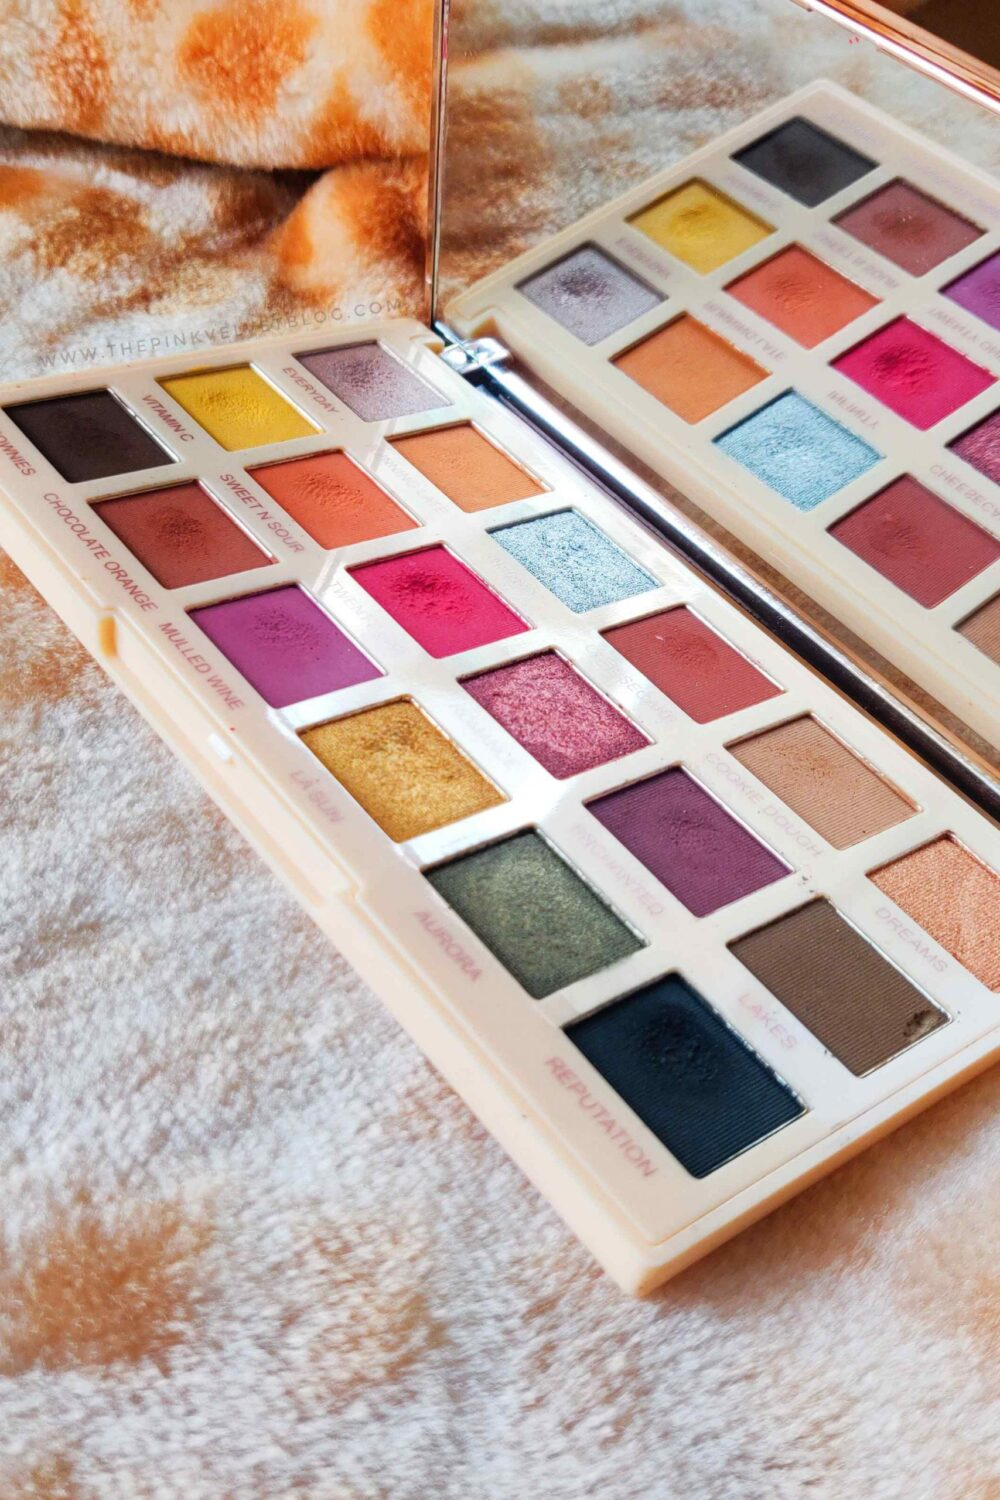 Makeup Revolution Soph X Extra Spice Eyeshadow Palette Review and Swatches